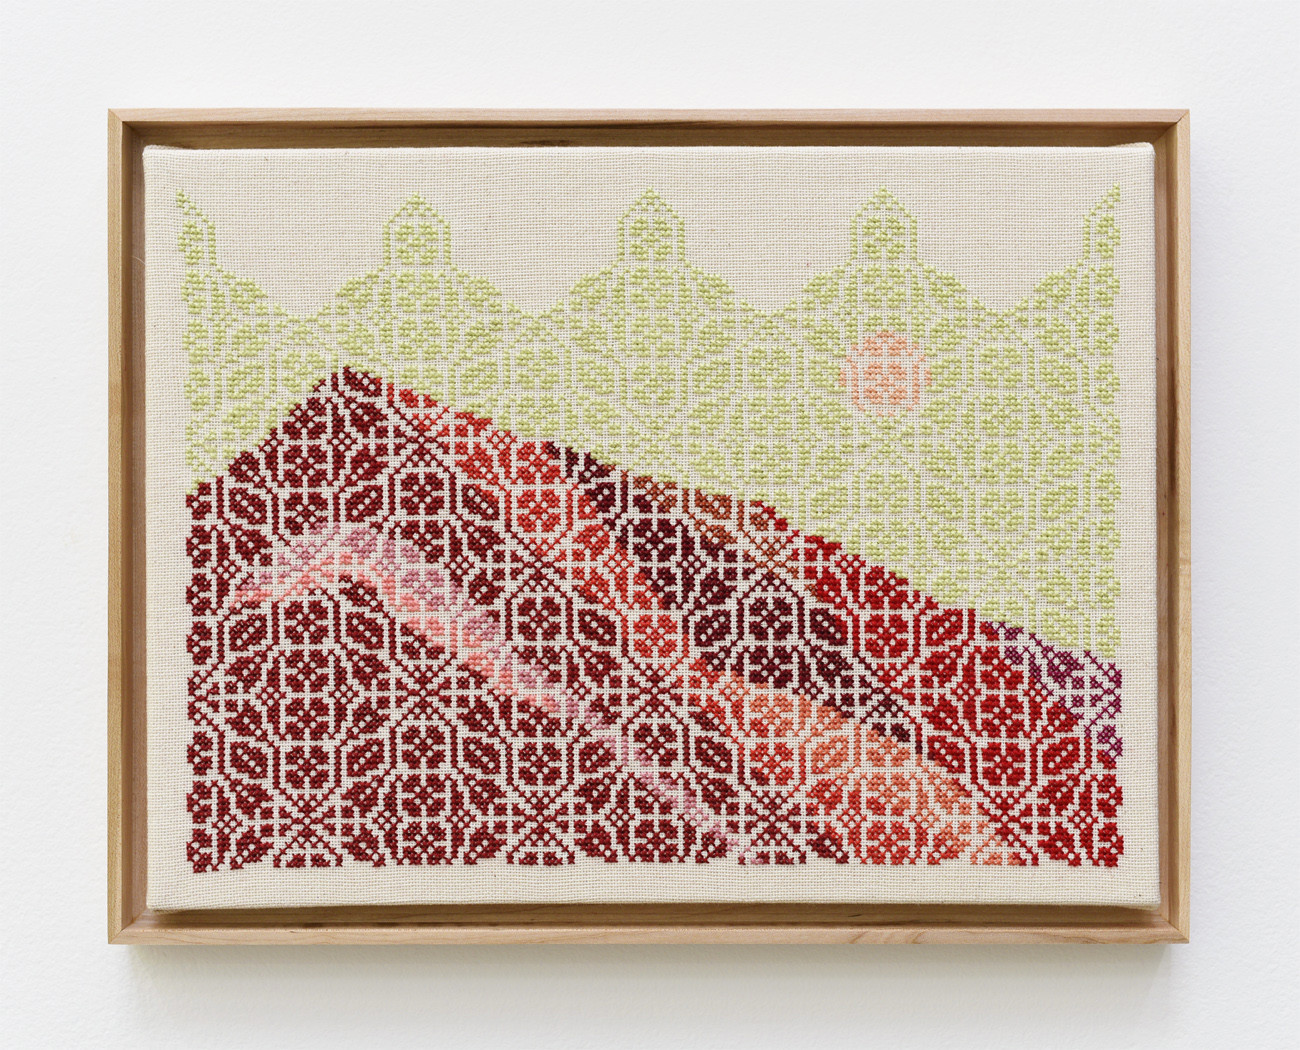 "Jordan Nassar's ""Jerusalem of Glass!"" 2017. Hand-embroidered cotton on cotton on canvas, 12 inches by 16 inches."